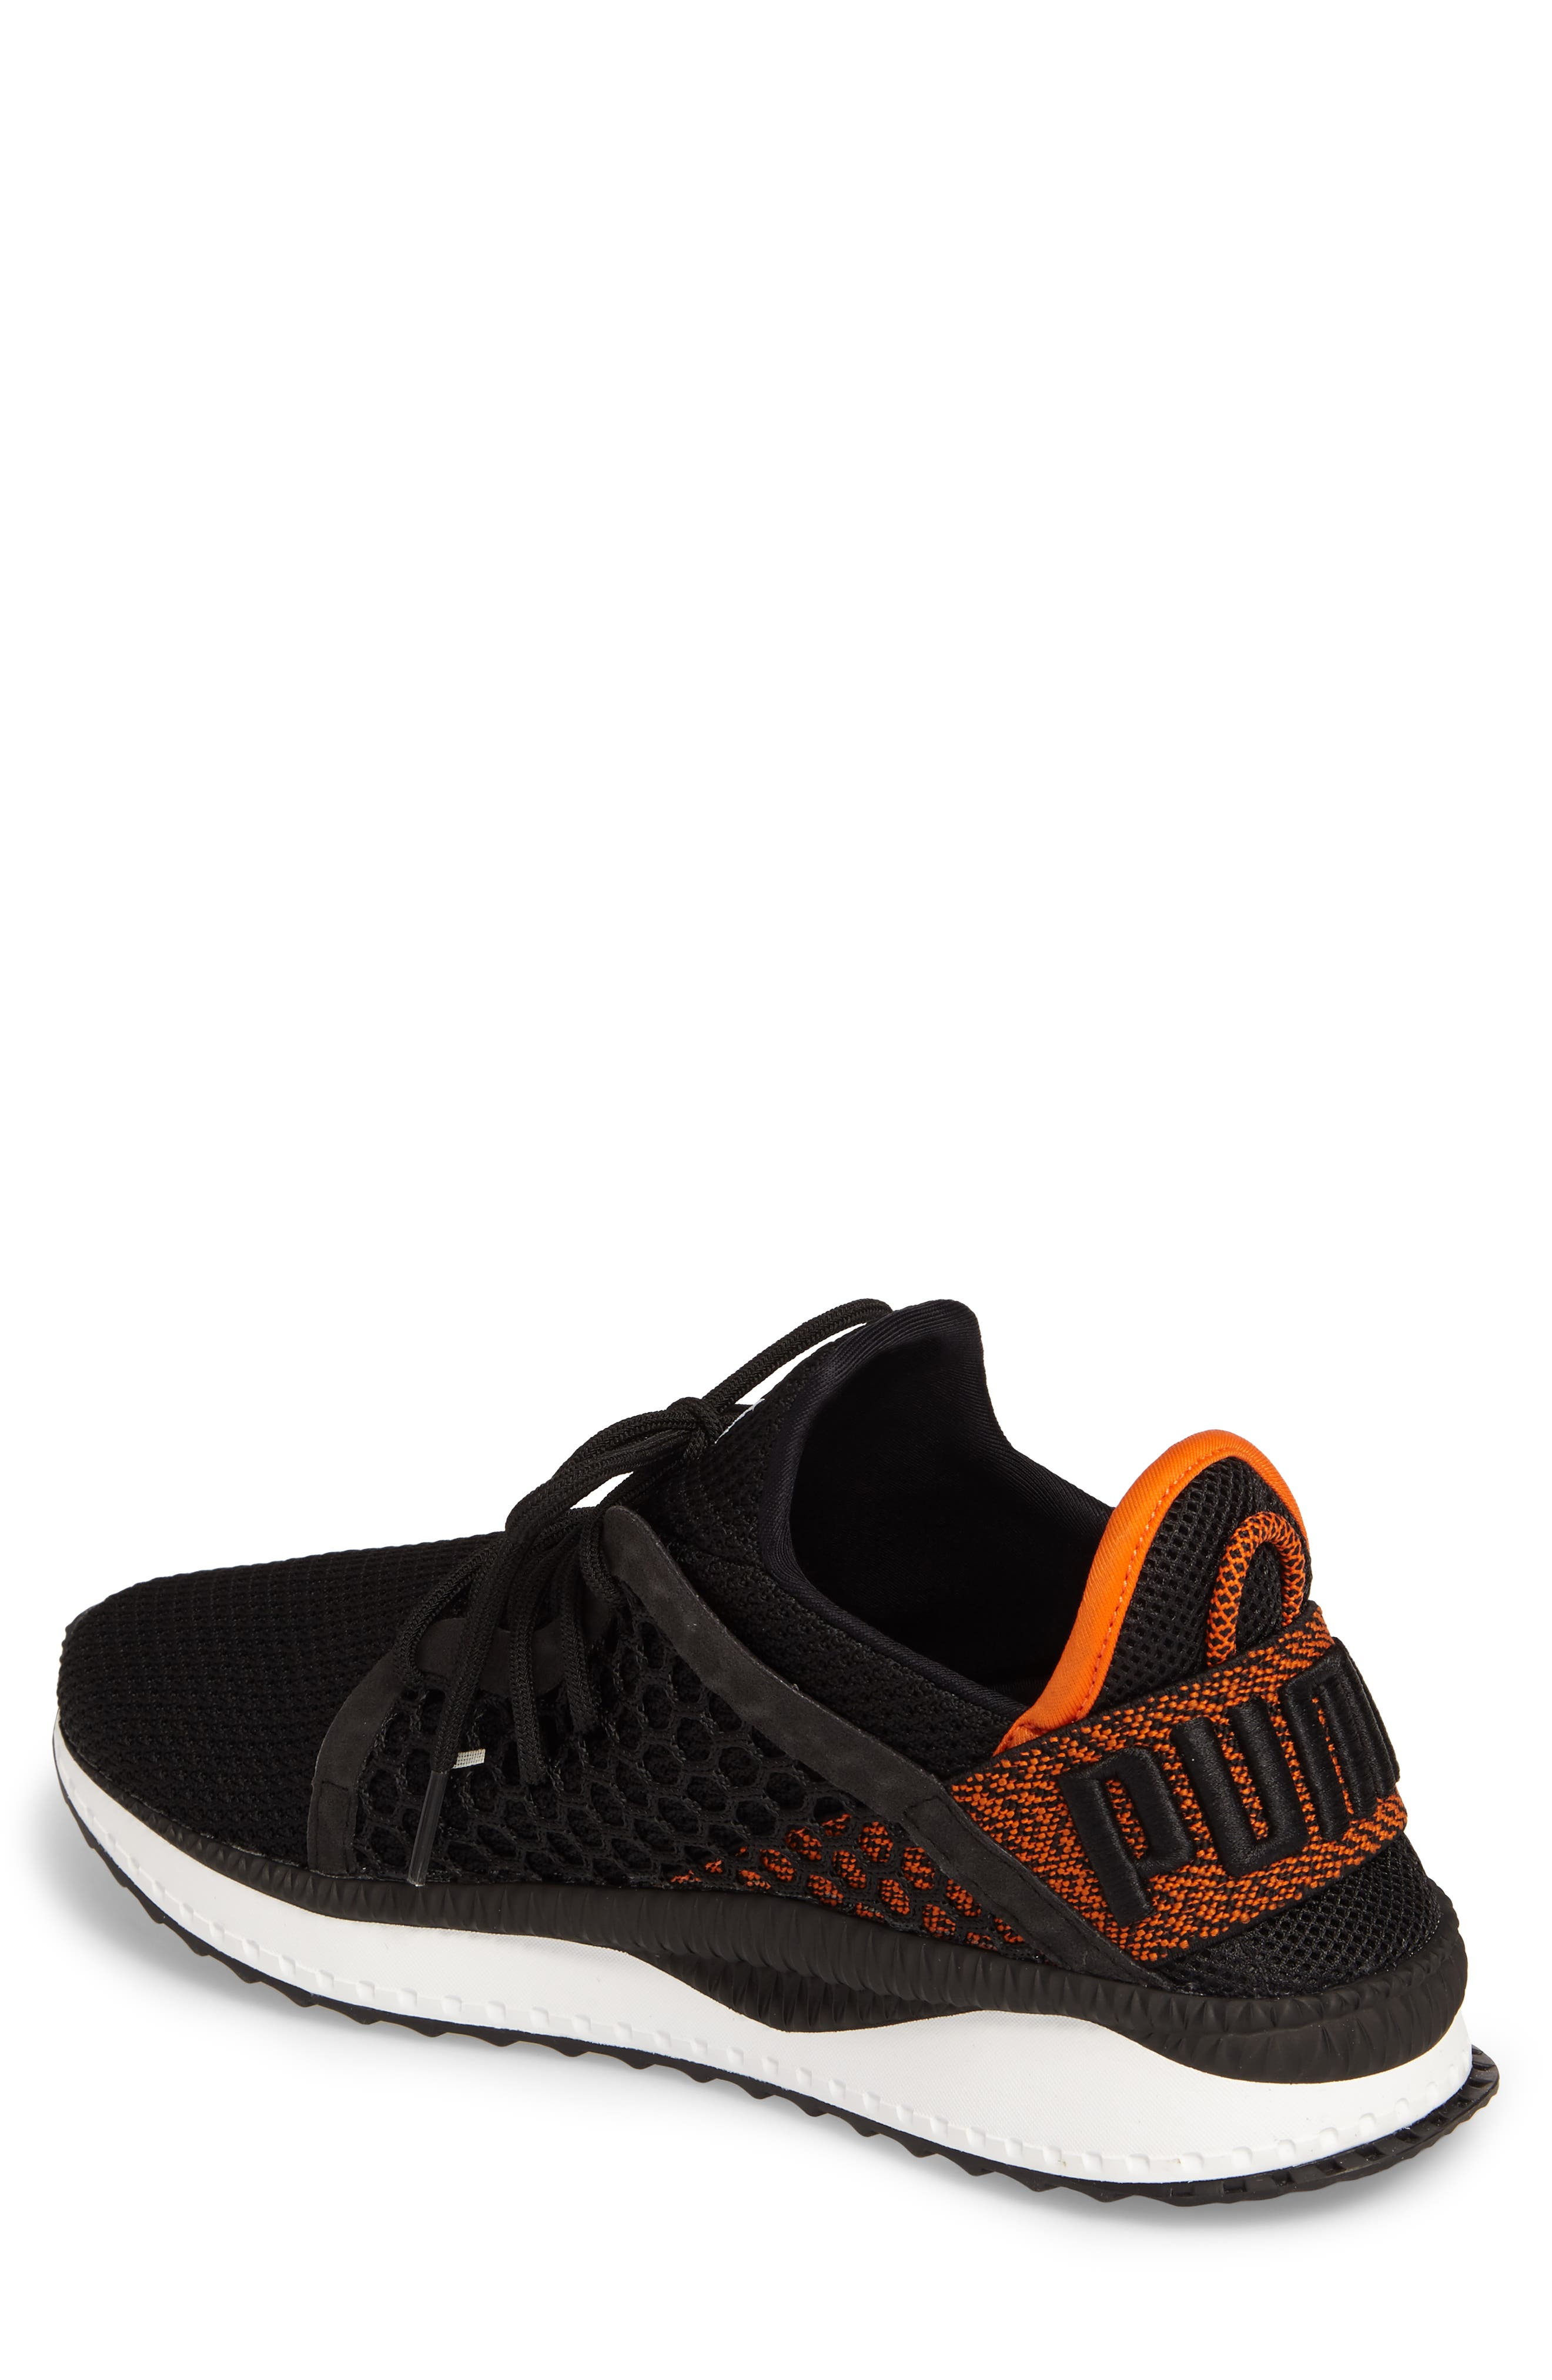 Alternate Image 2  - PUMA Tsugi Netfit Training Shoe (Men)